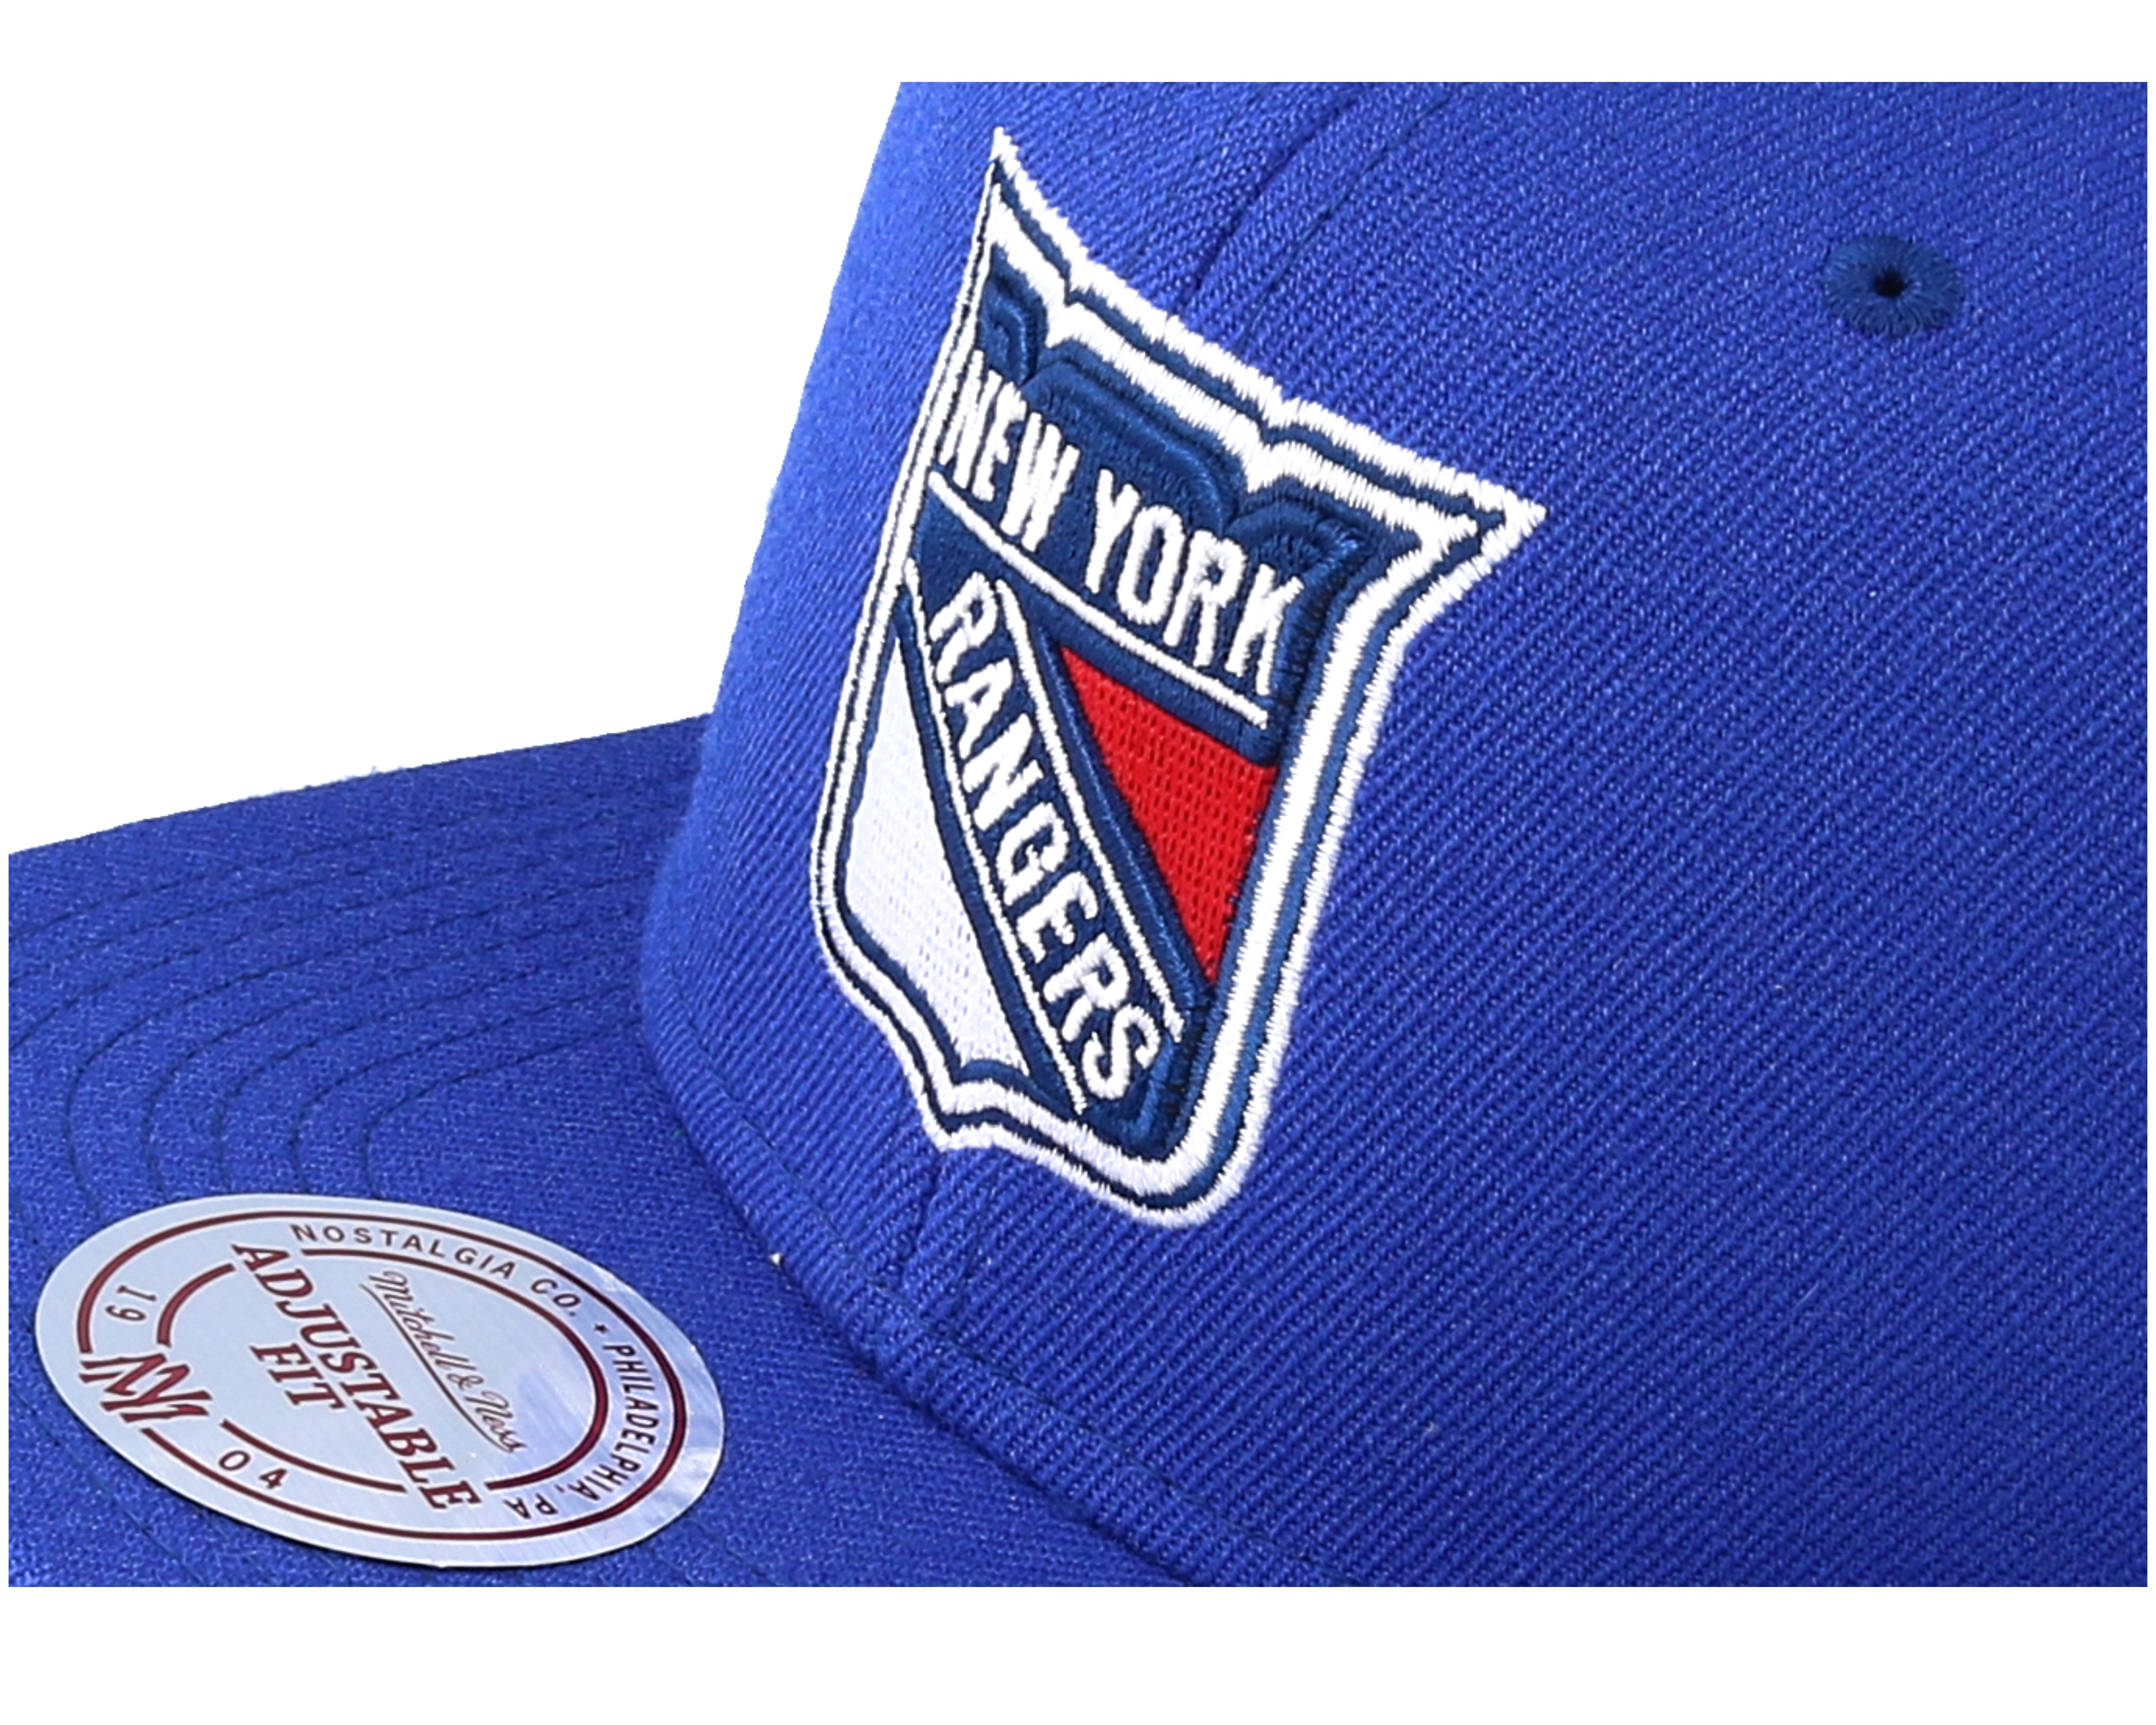 on sale adfda ca925 Shop ny rangers / Babies r us miami